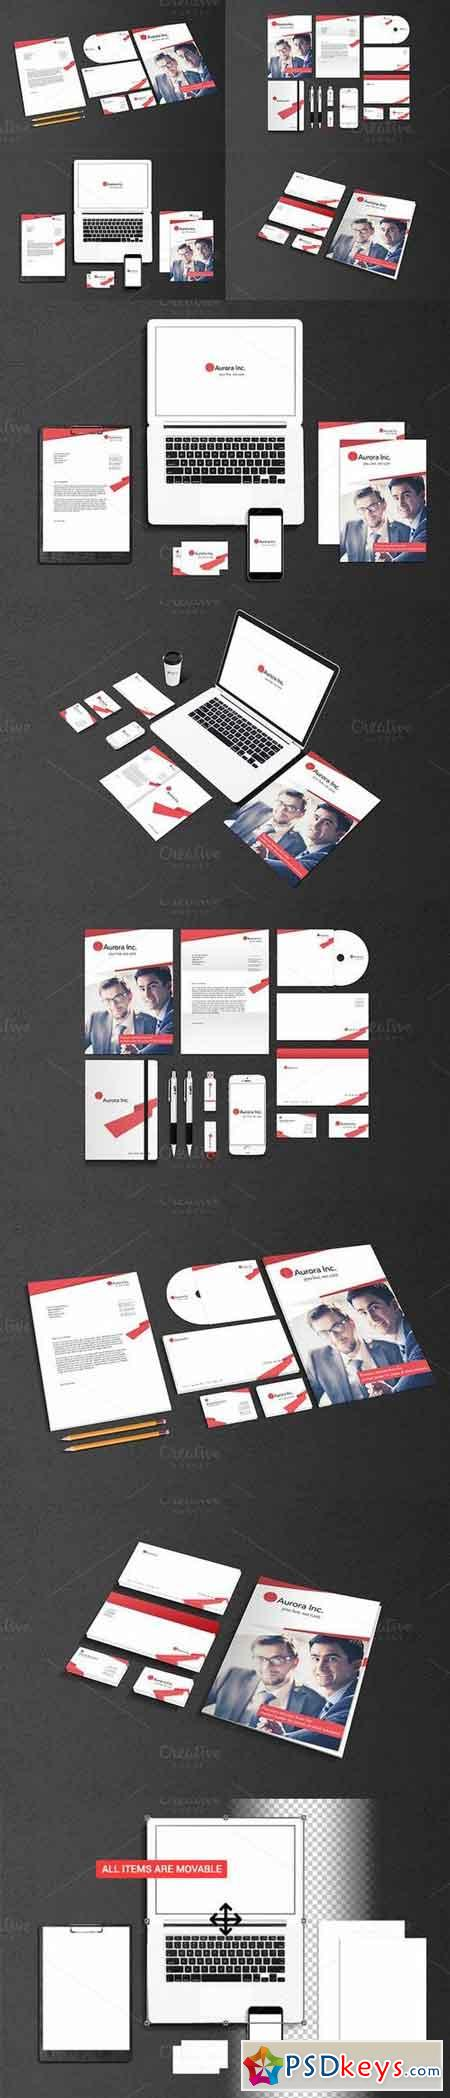 Stationary And Branding - Mockups 373665